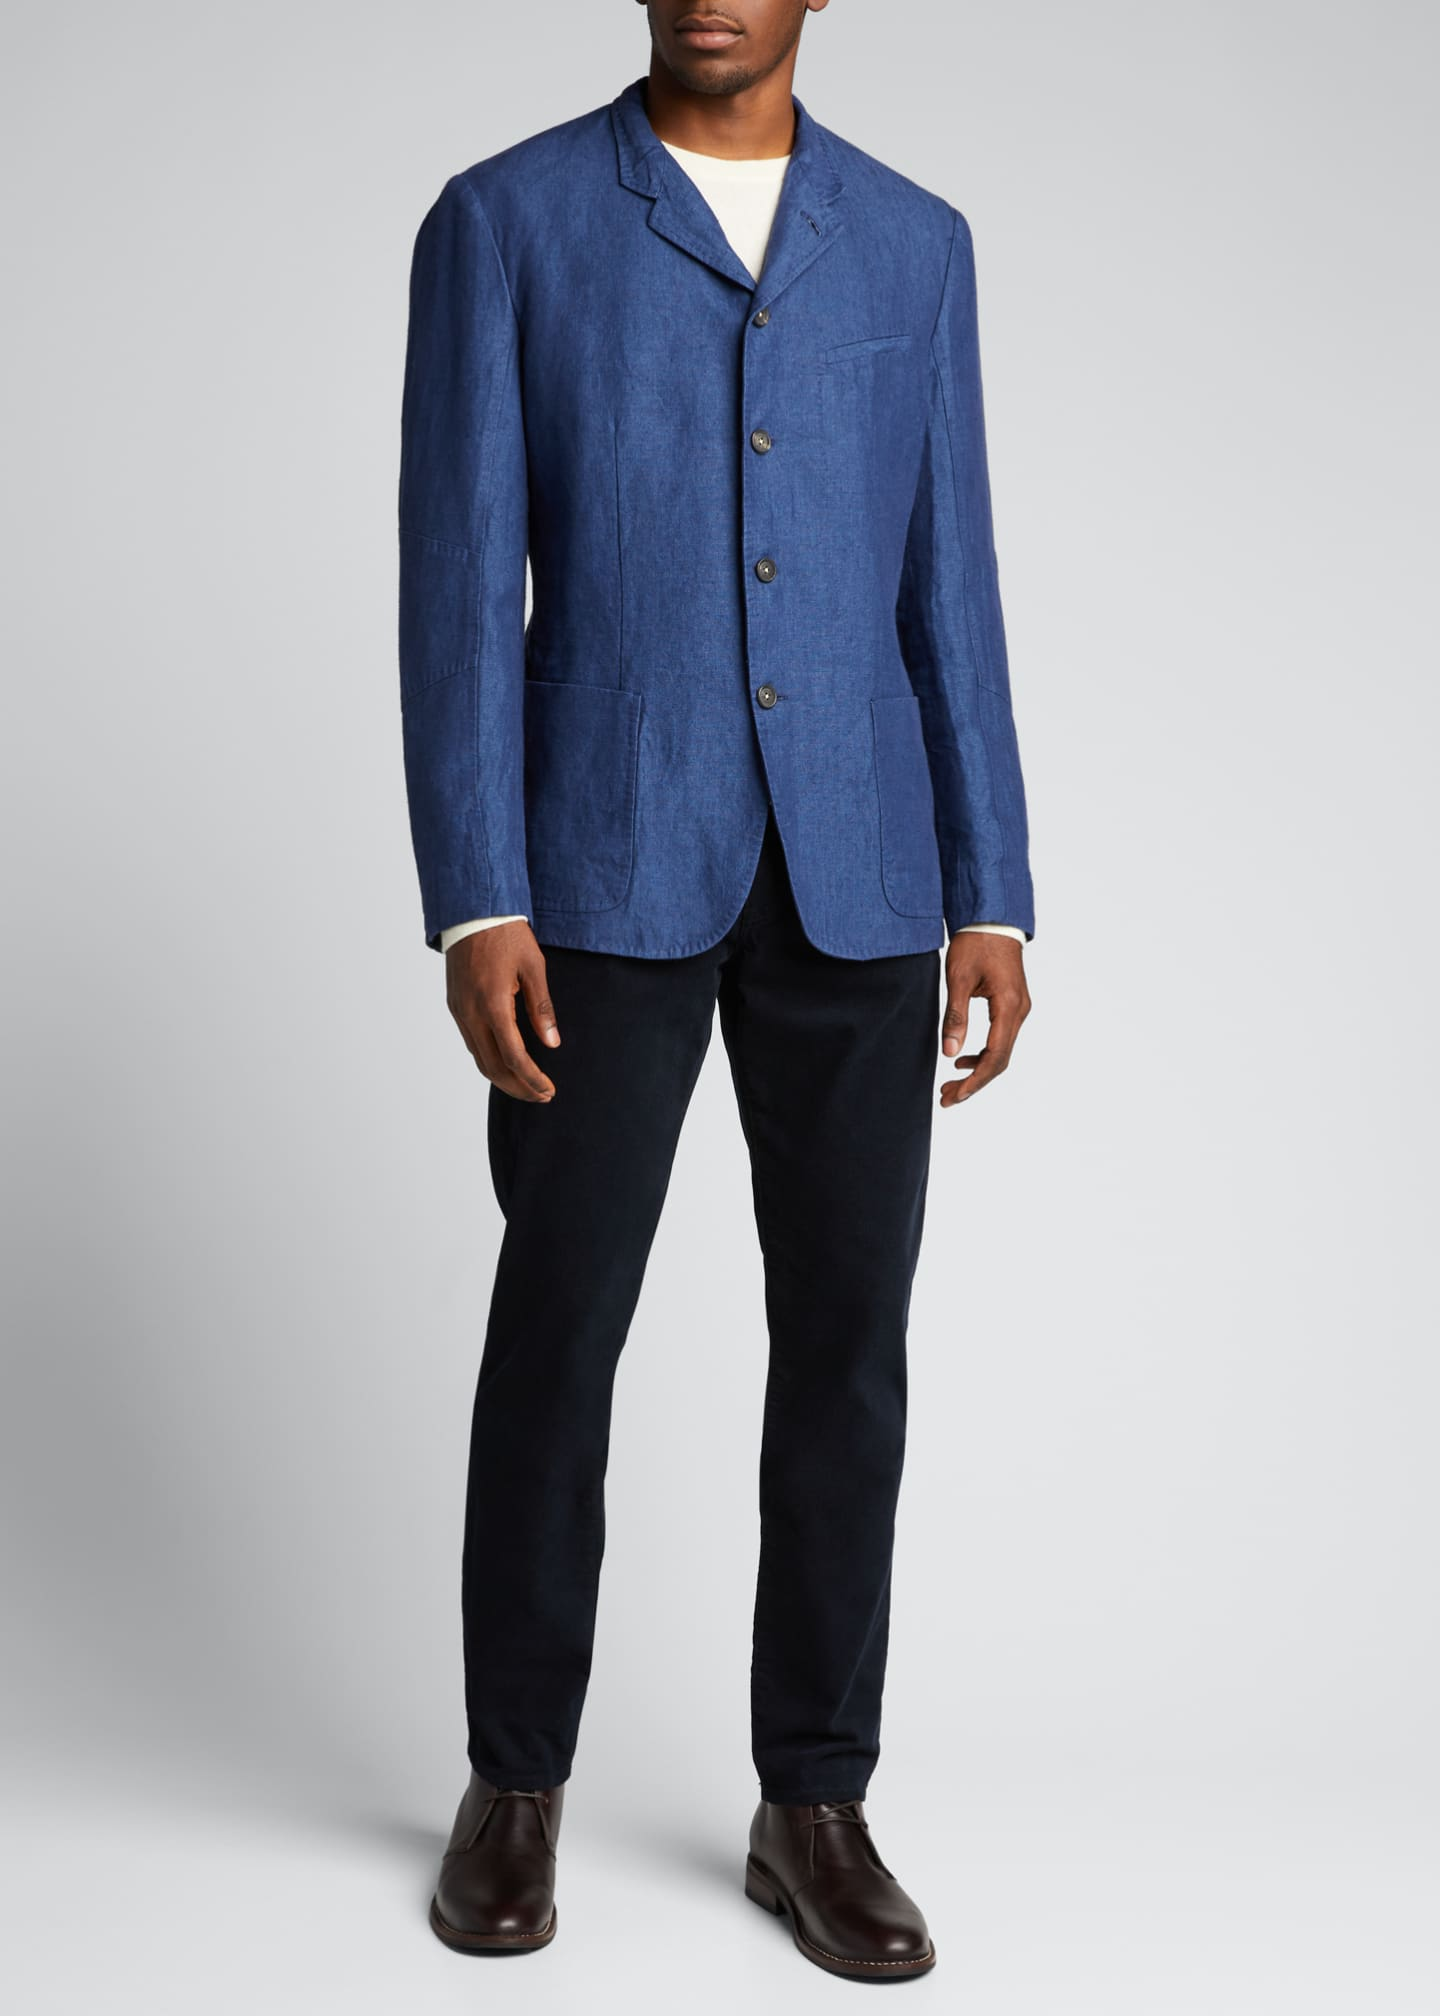 Image 1 of 5: Men's Solid Linen Jacket